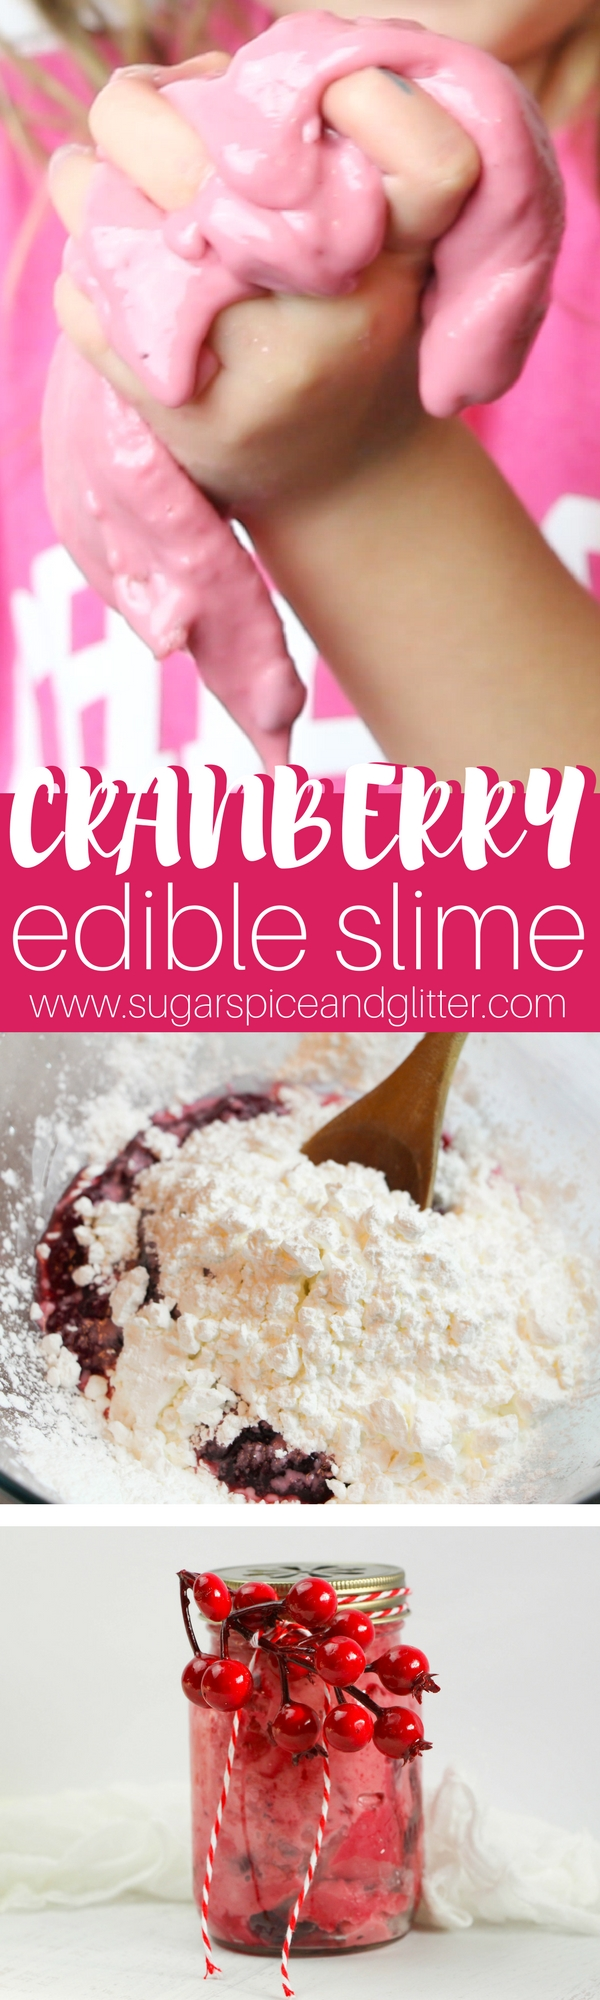 An easy edible slime recipe that your kids will love! A Christmas cranberry slime with just two ingredients, this safe slime is great for all ages